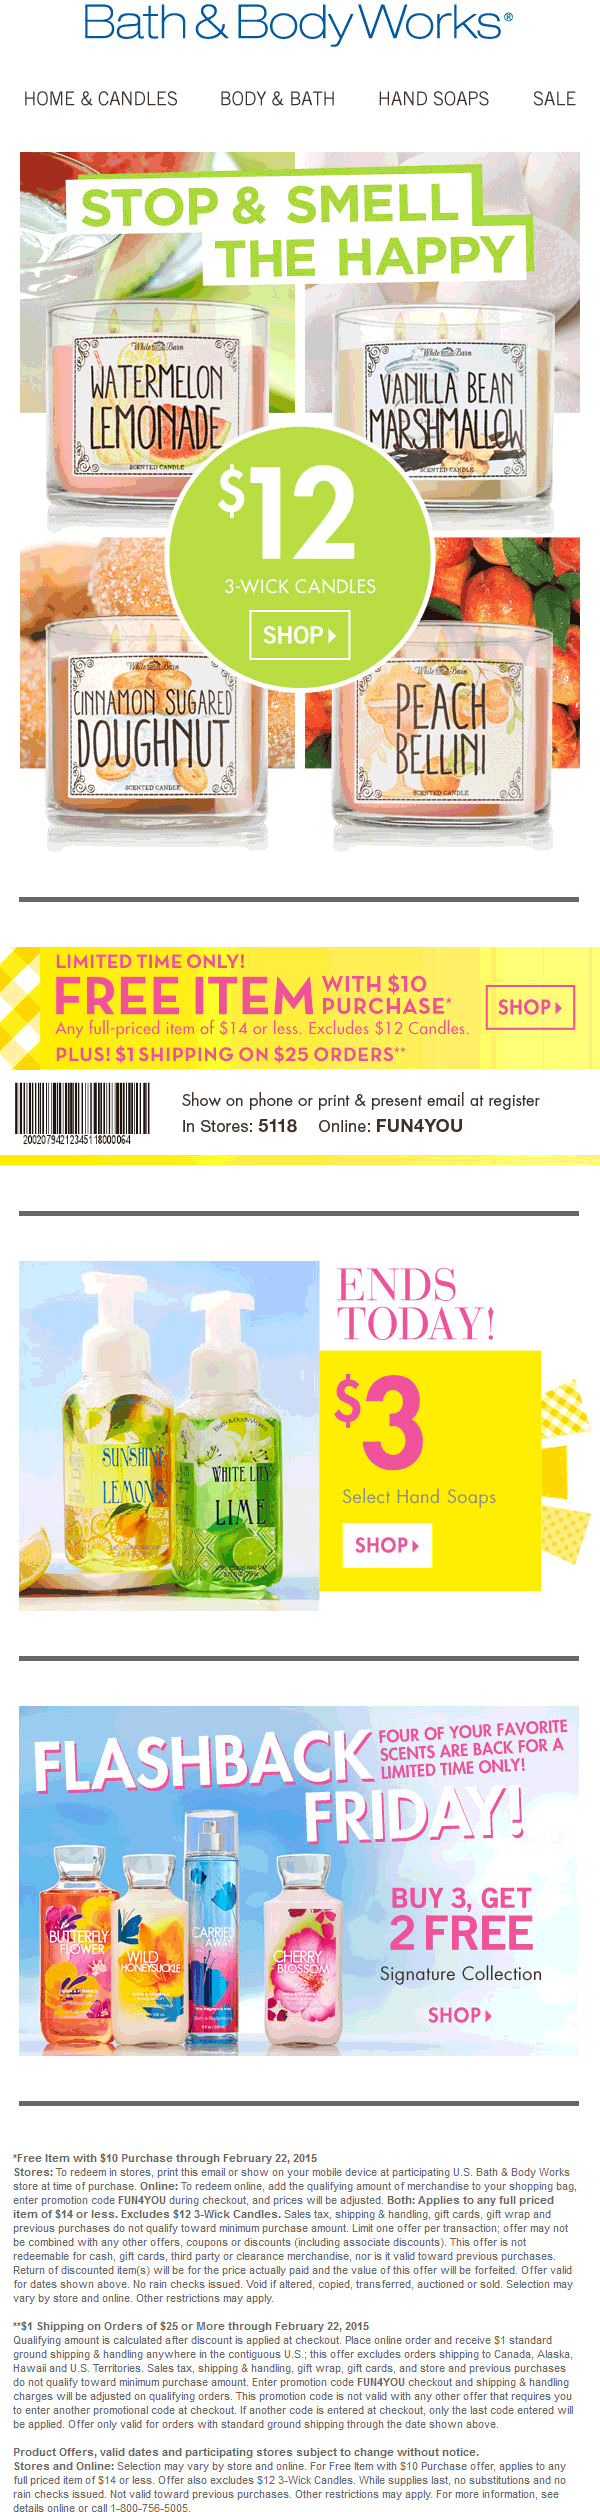 Bath & Body Works Coupon June 2017 Any $14 item free with $10 spent at Bath & Body Works, or online via promo code FUN4YOU